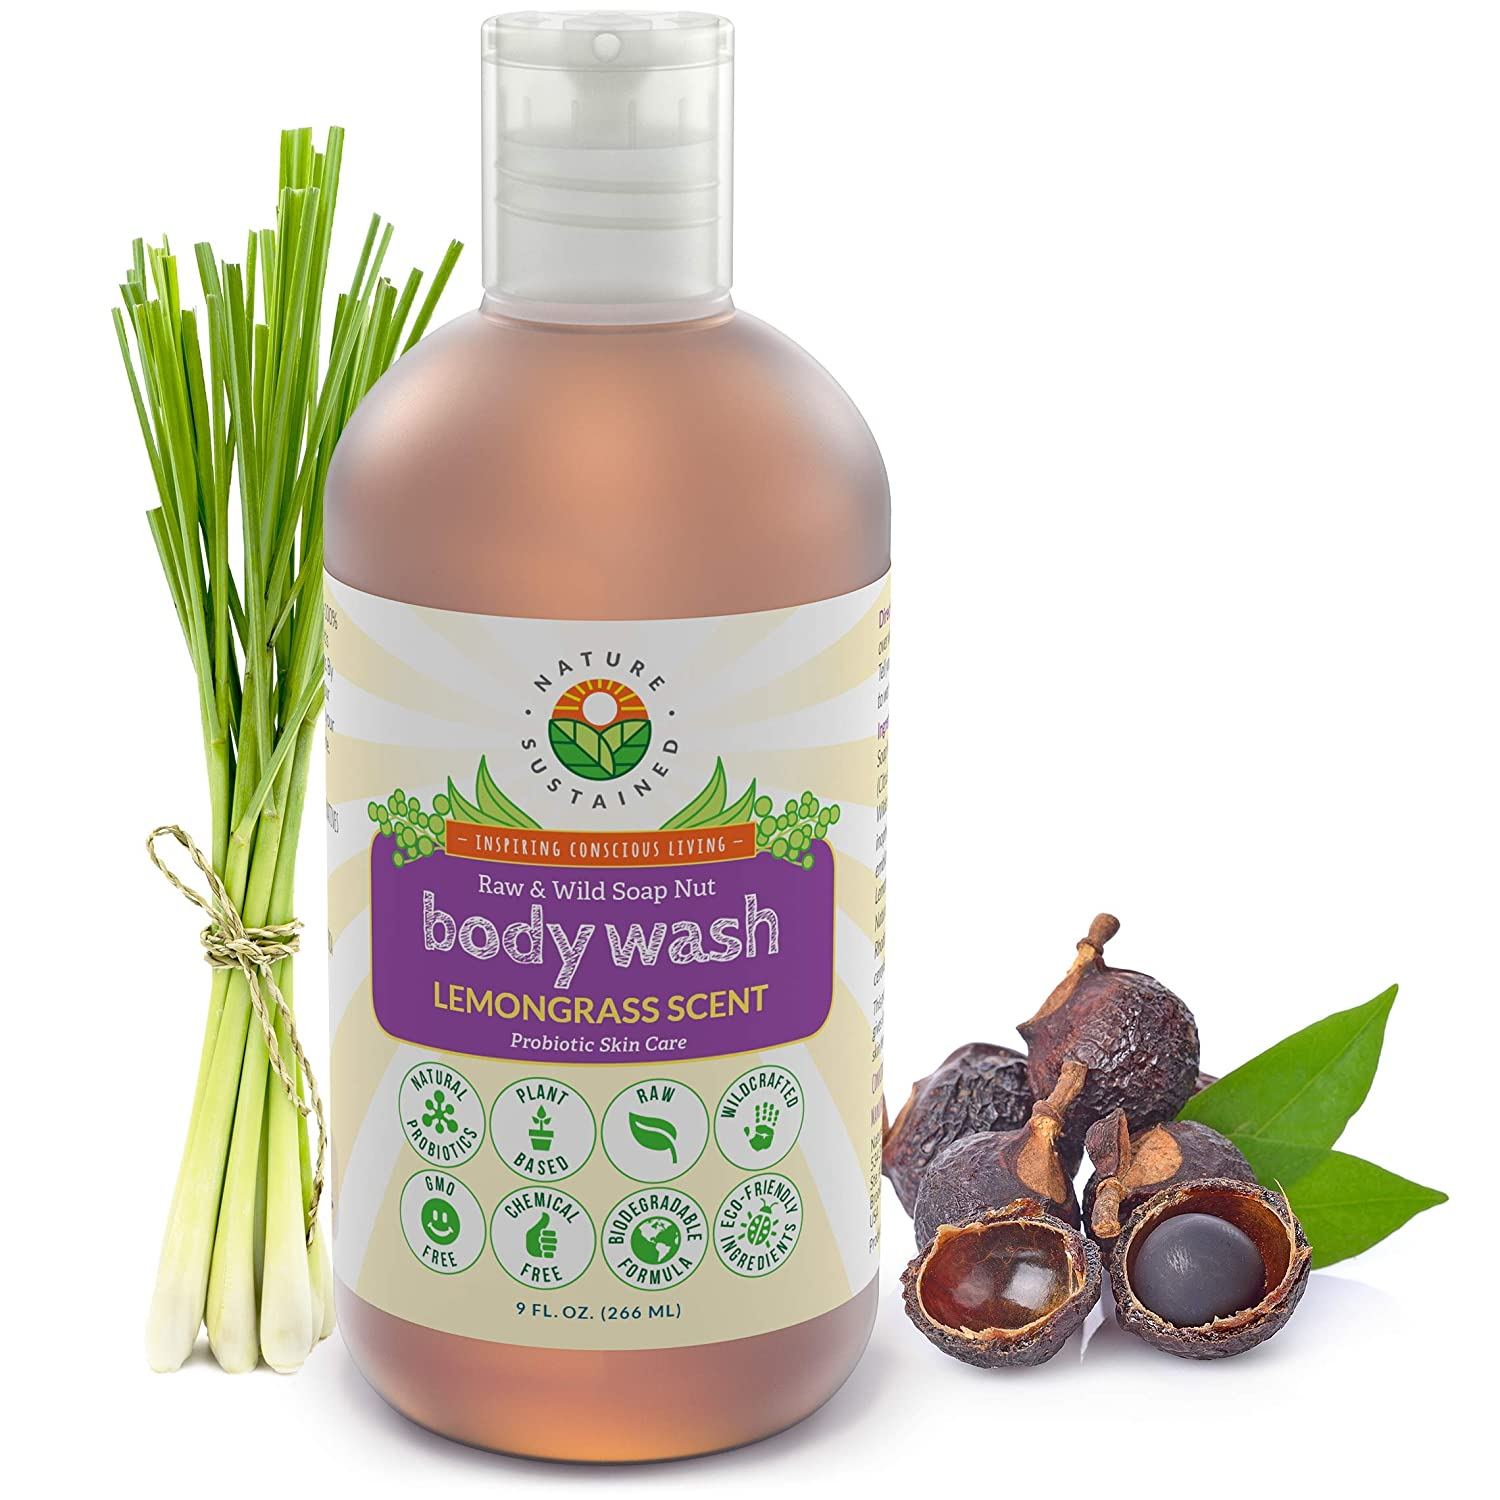 Pure, Sensitive Skin Natural Body Wash & Face Wash [Lemongrass] – Raw Probiotic Soapberry Formula (pH Balanced) for Eczema & Psoriasis - Wild Plants Selected for Sensitive & Dry Skin